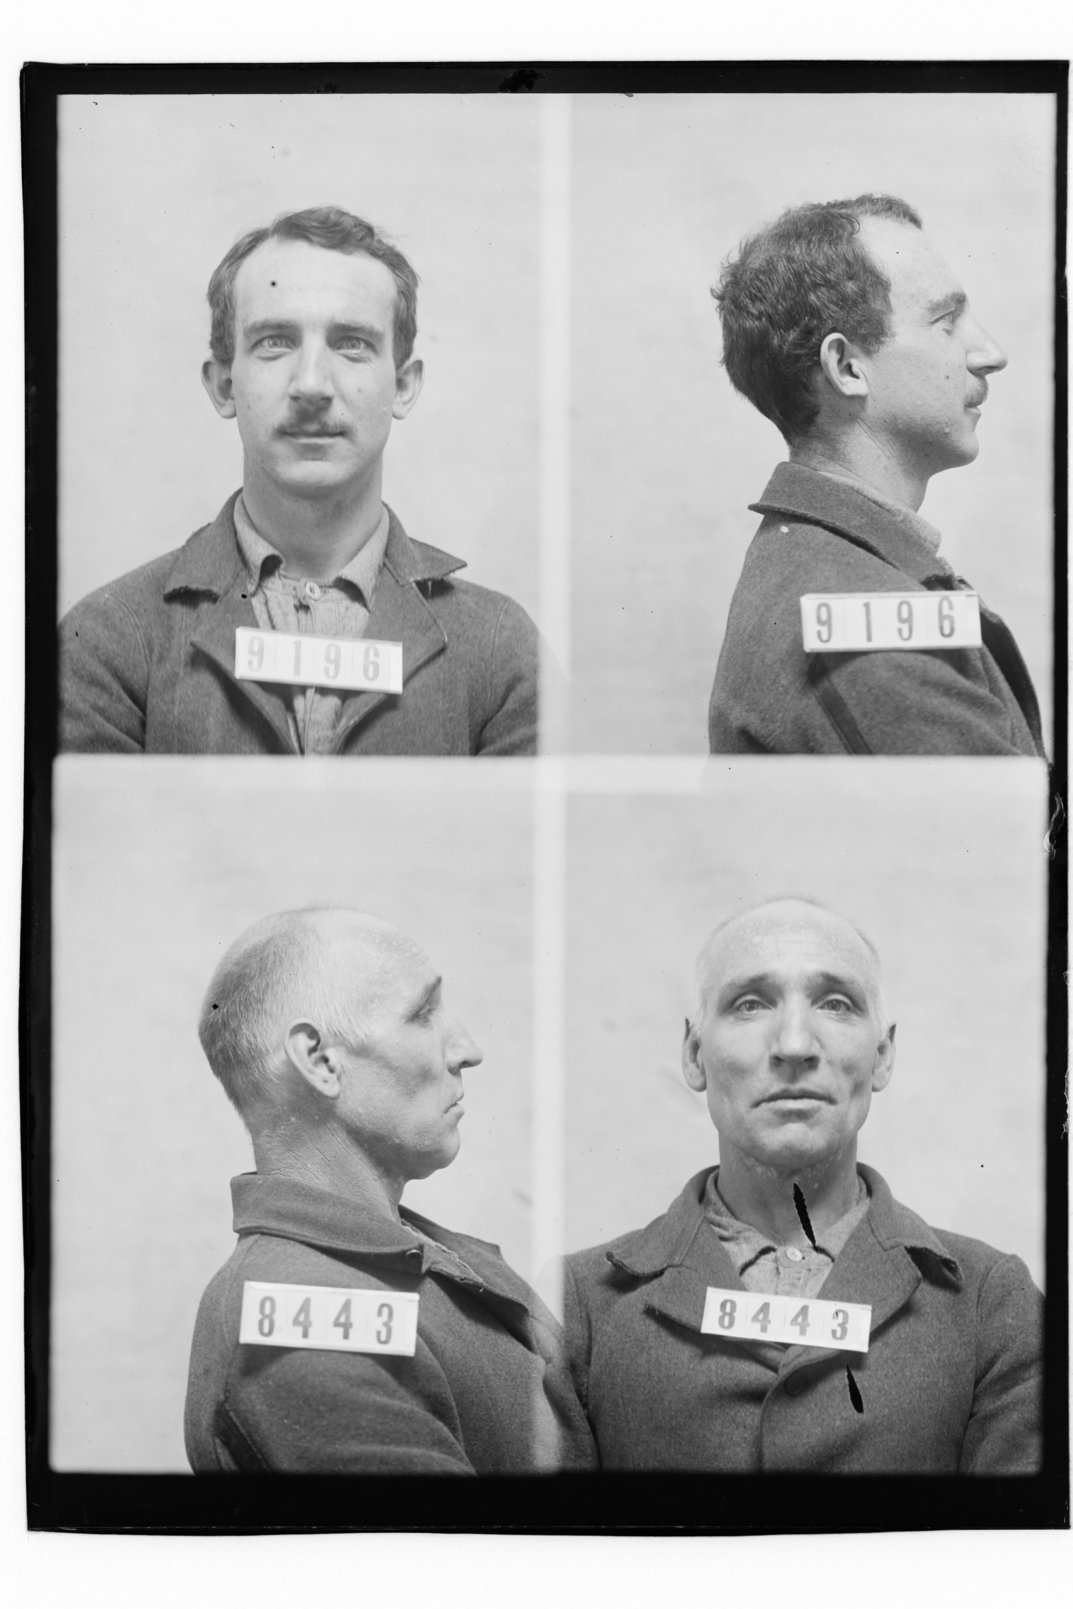 Aaron Zadik and Daul Mans, prisoners 9196 and 8443